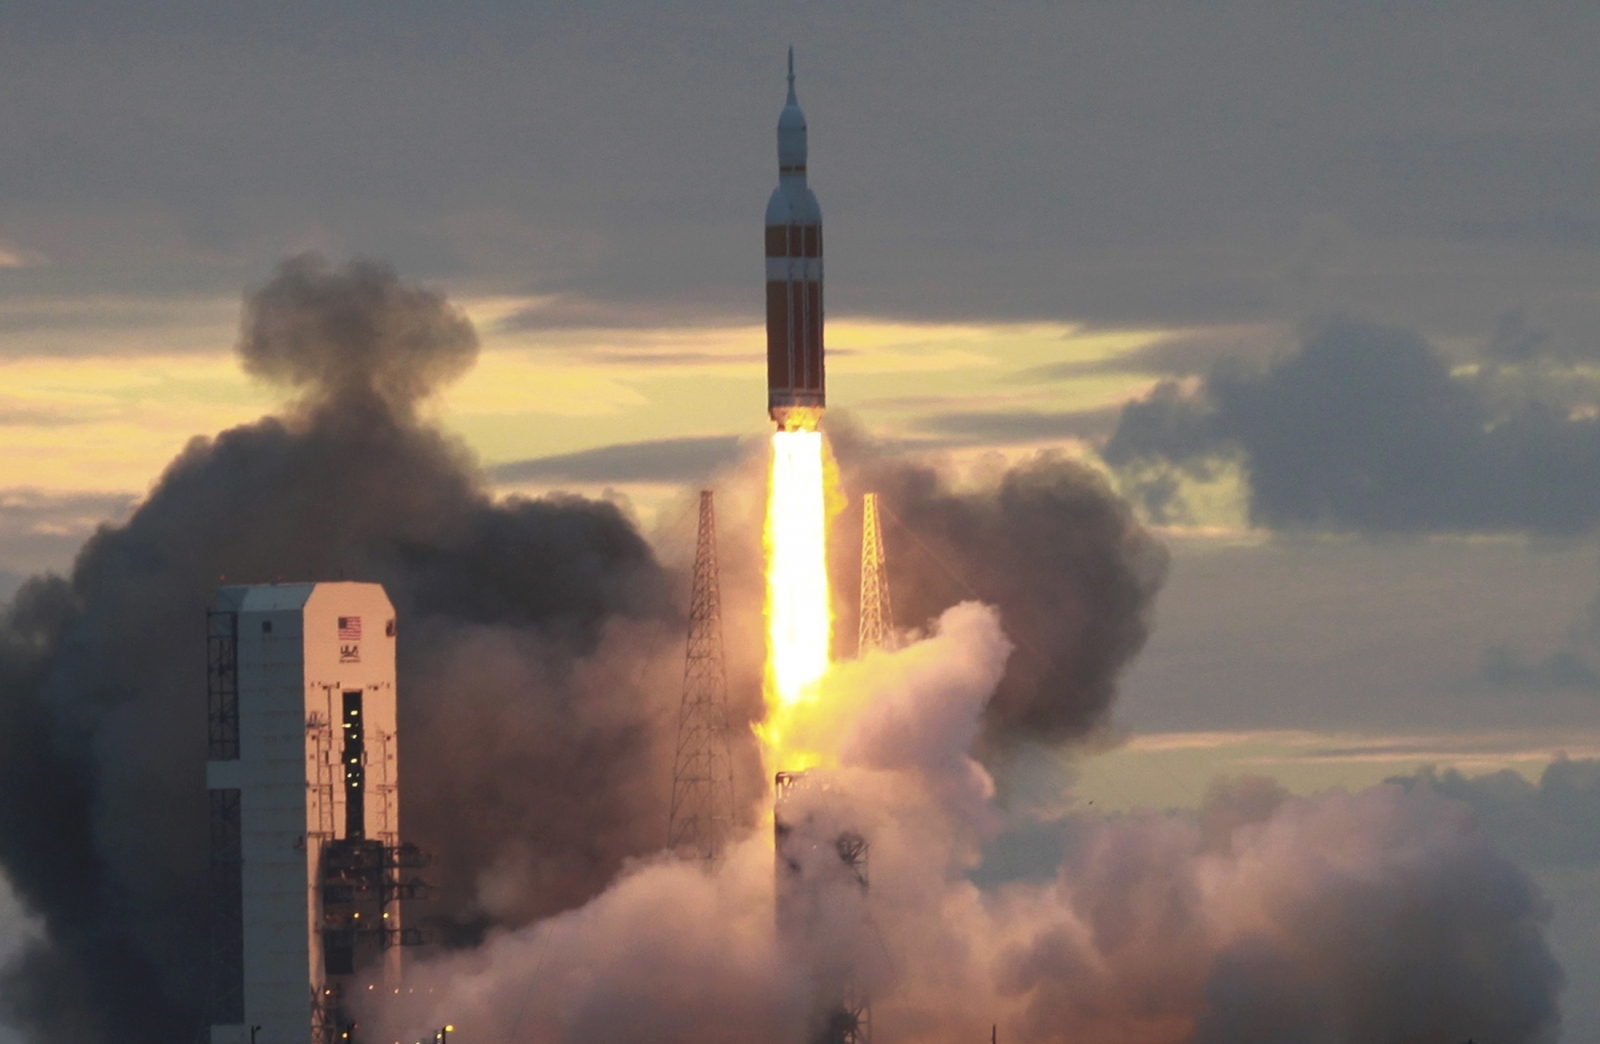 NASA launches new Orion spacecraft on test flight